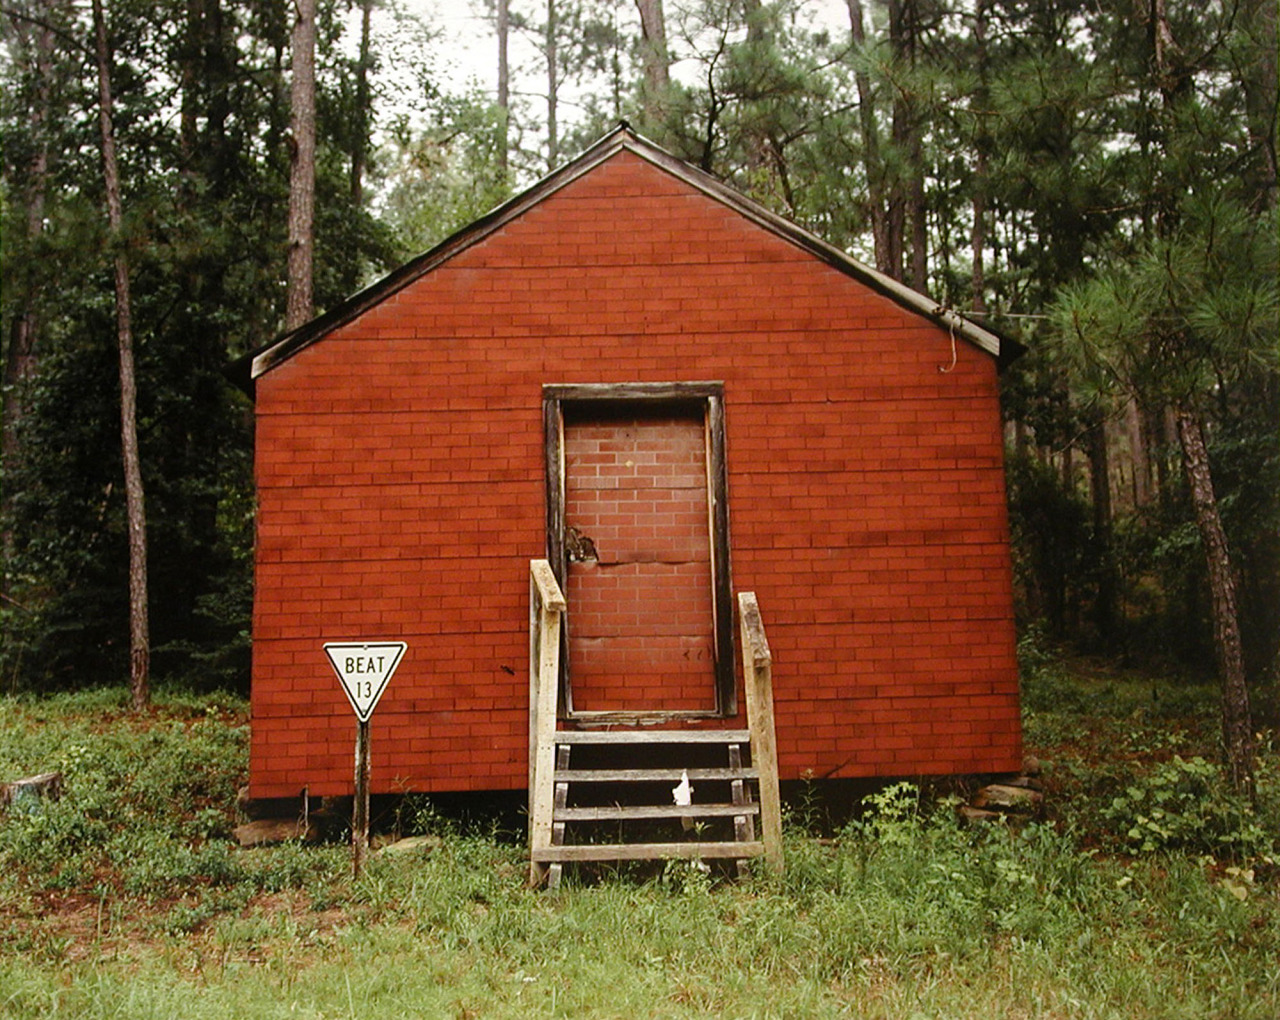 Color photography, Red Building in Forest, Hale County, Alabama, 1974 © William Christenberry